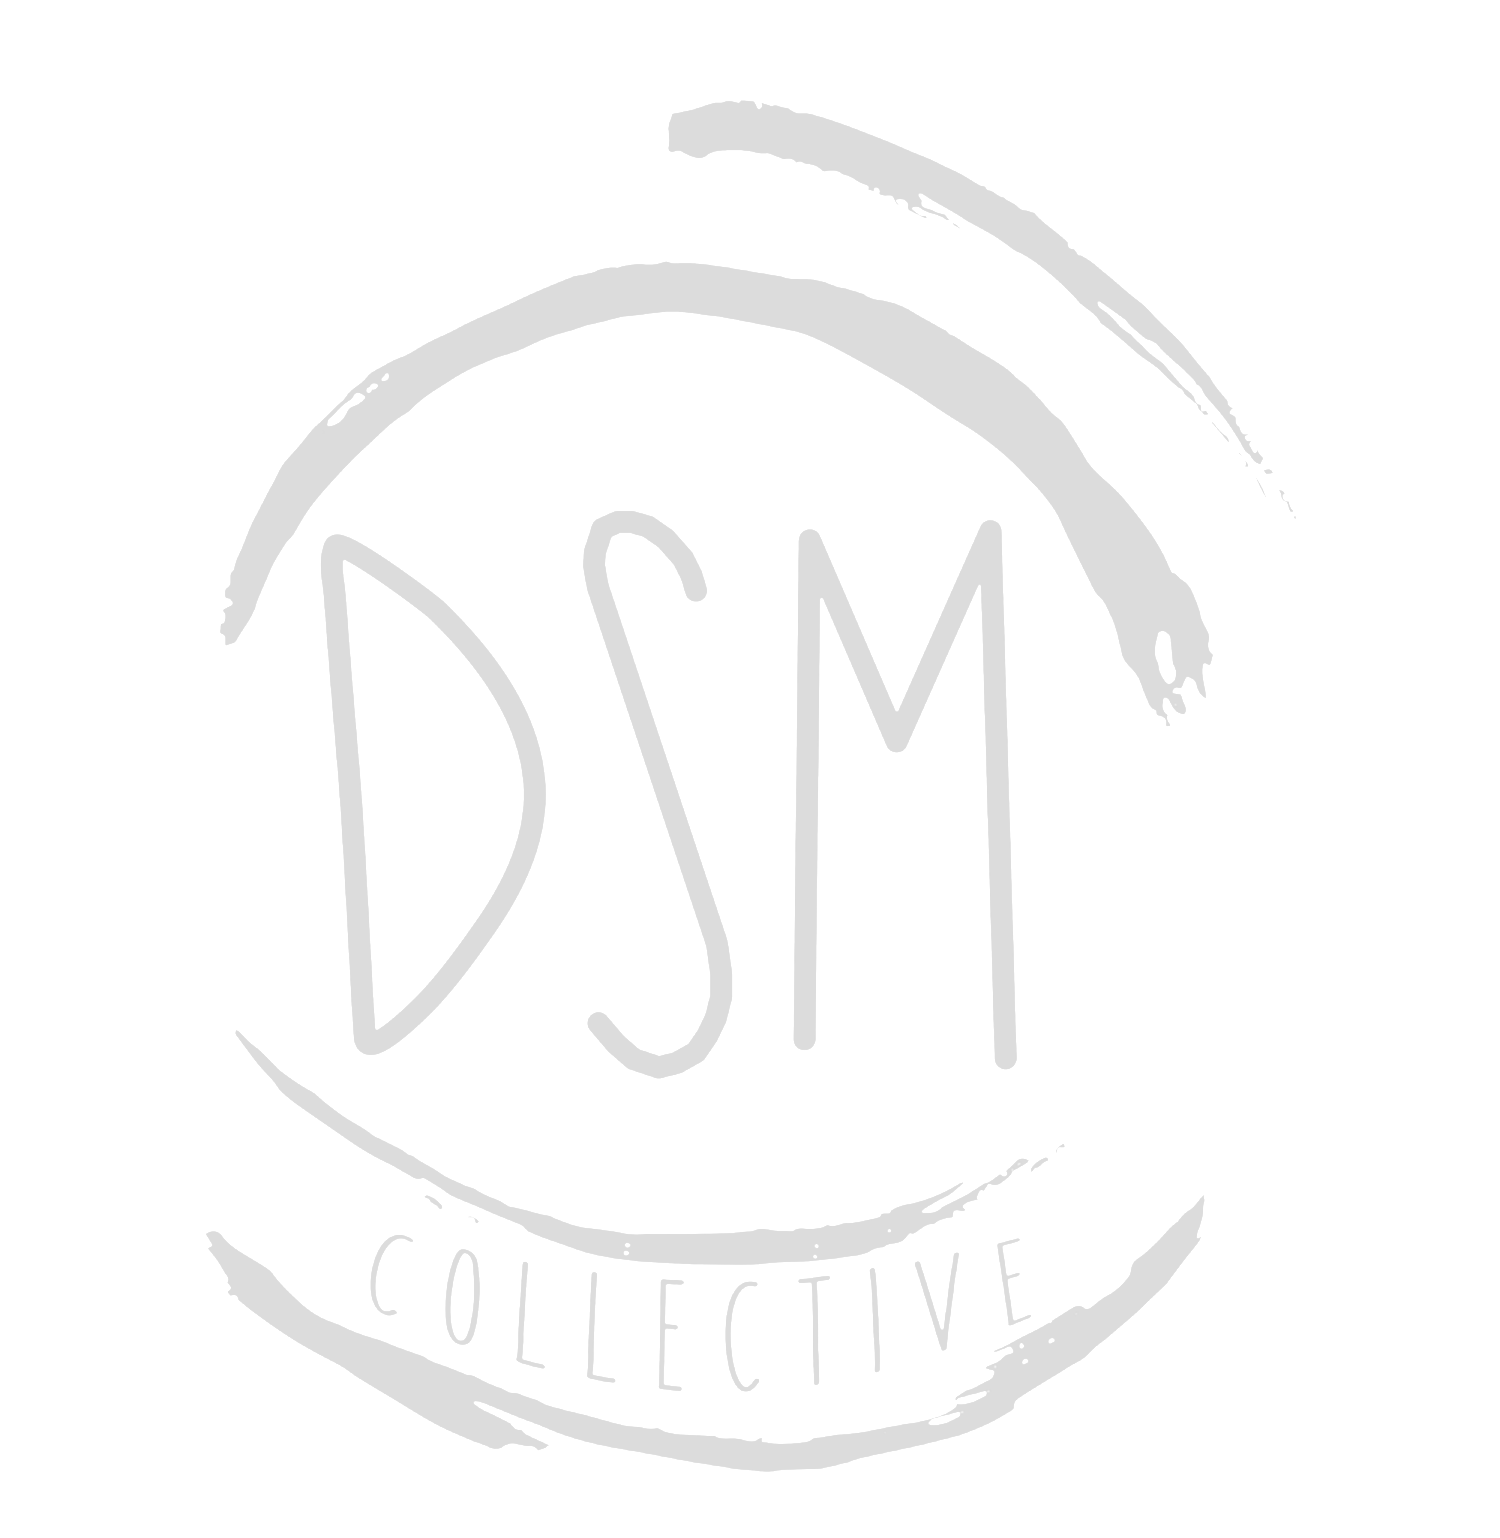 The Des Moines Collective